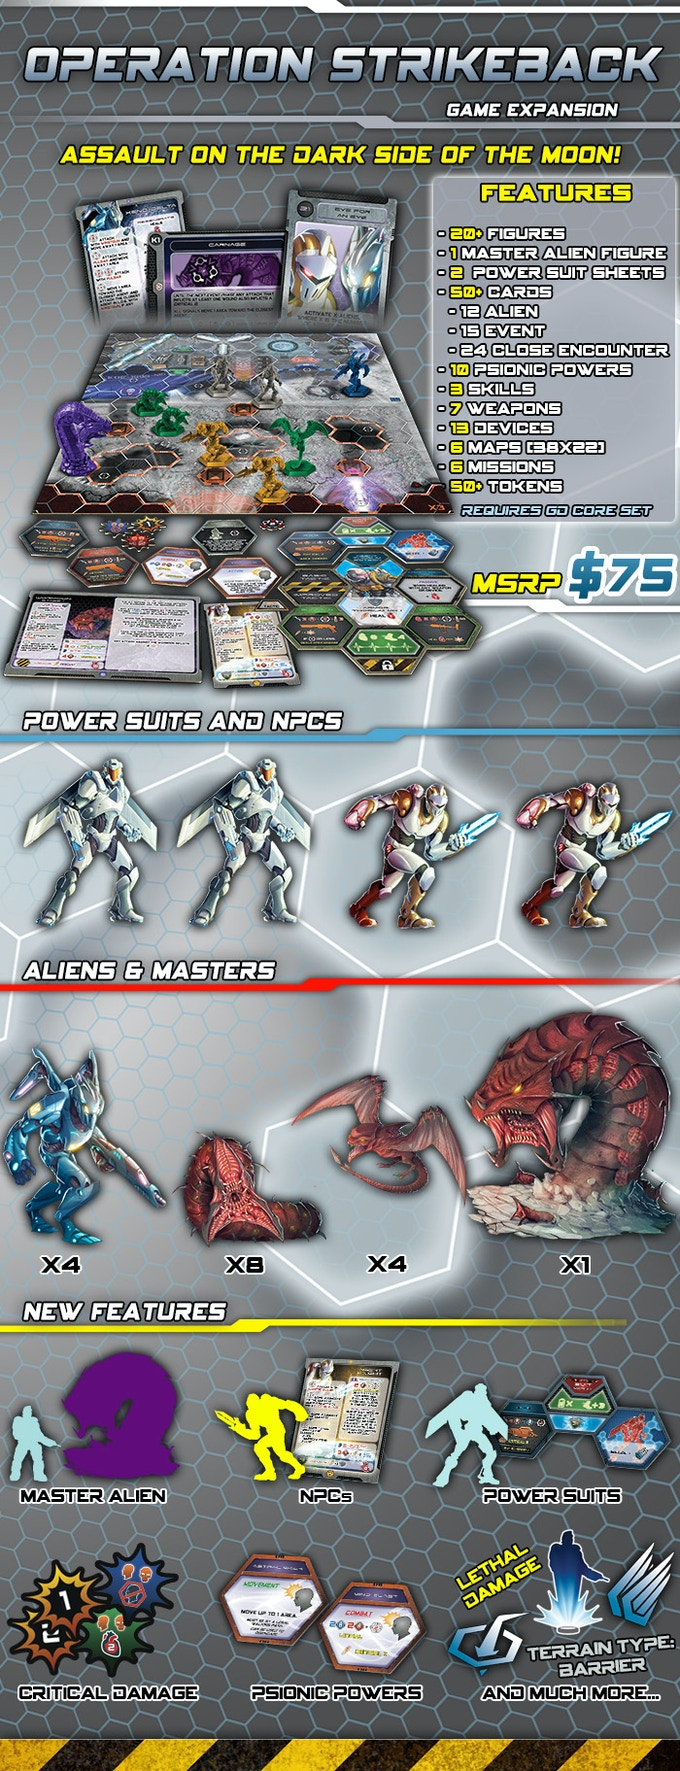 Galaxy Defenders - The Earth Strikes Back! boardgame by Ares